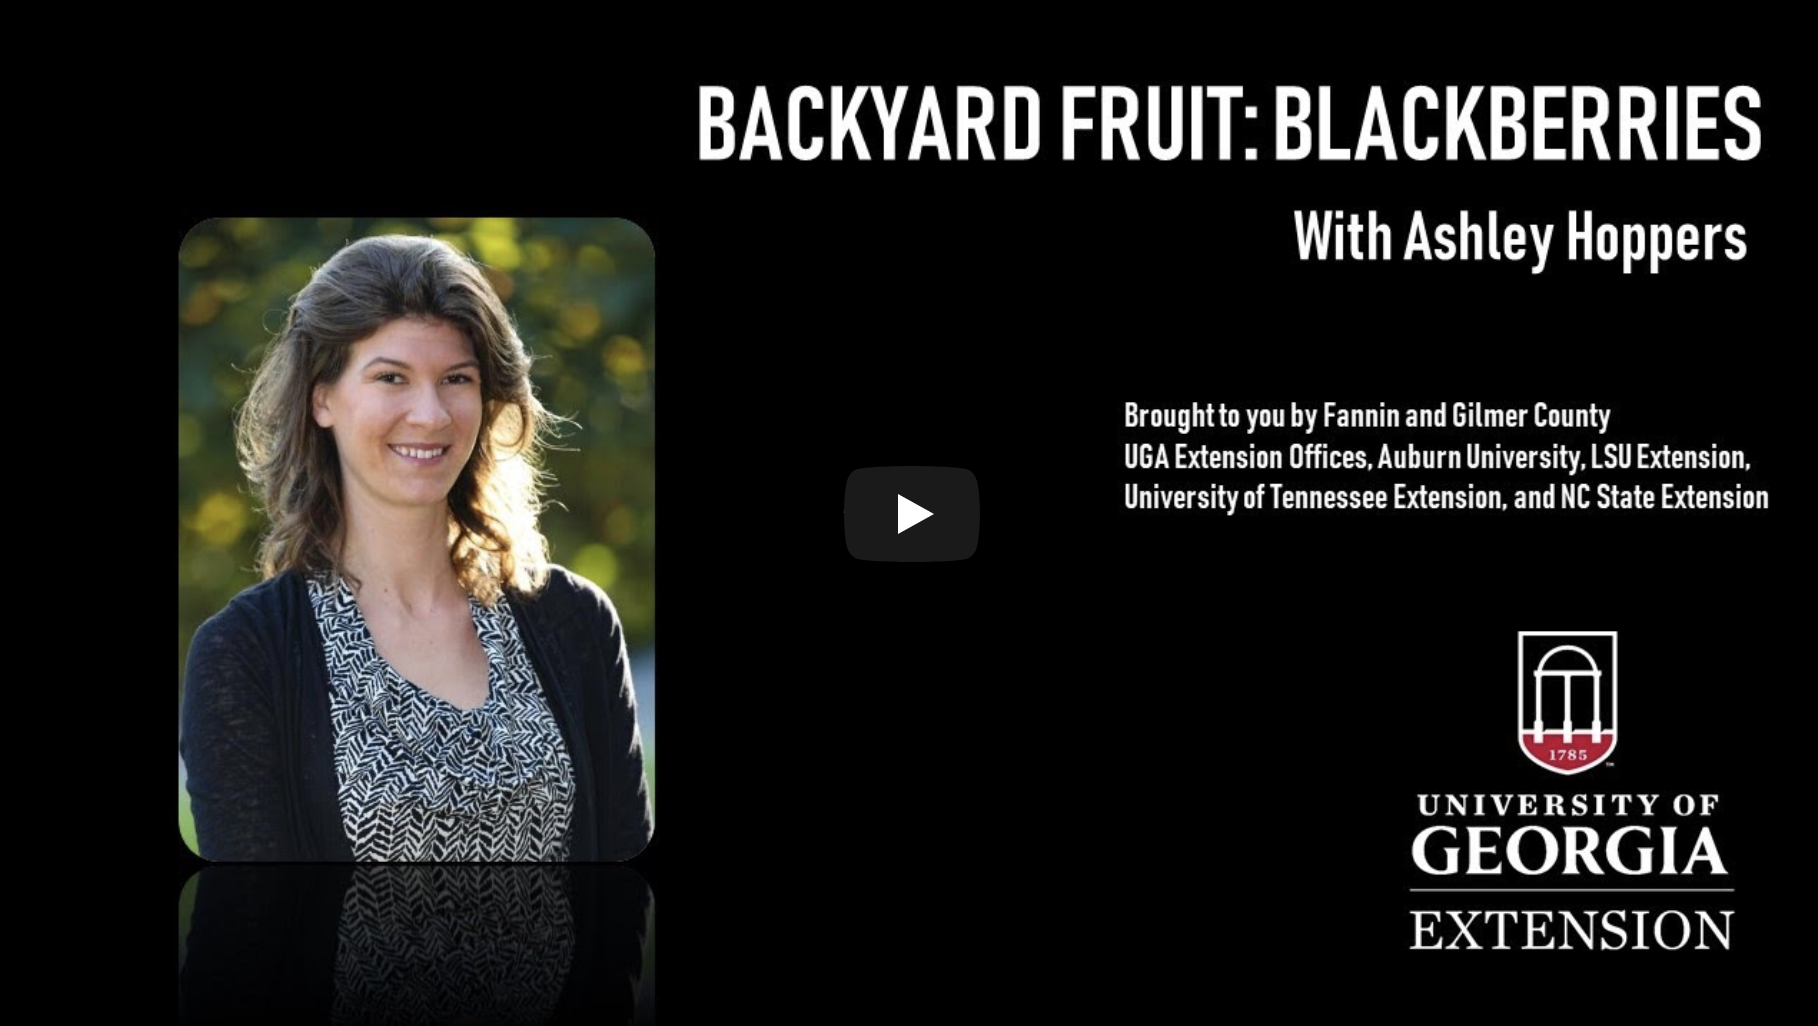 Although a bit of a challenge to switch to creating webinars for otherwise hands-on activities, UGA Extension Agent Ashley Hoppers finds the audience for the backyard fruits webinar series she organized is far larger than any in-person classes she has held in the past. She is one of many faculty members that began reaching new clientele through online delivery.